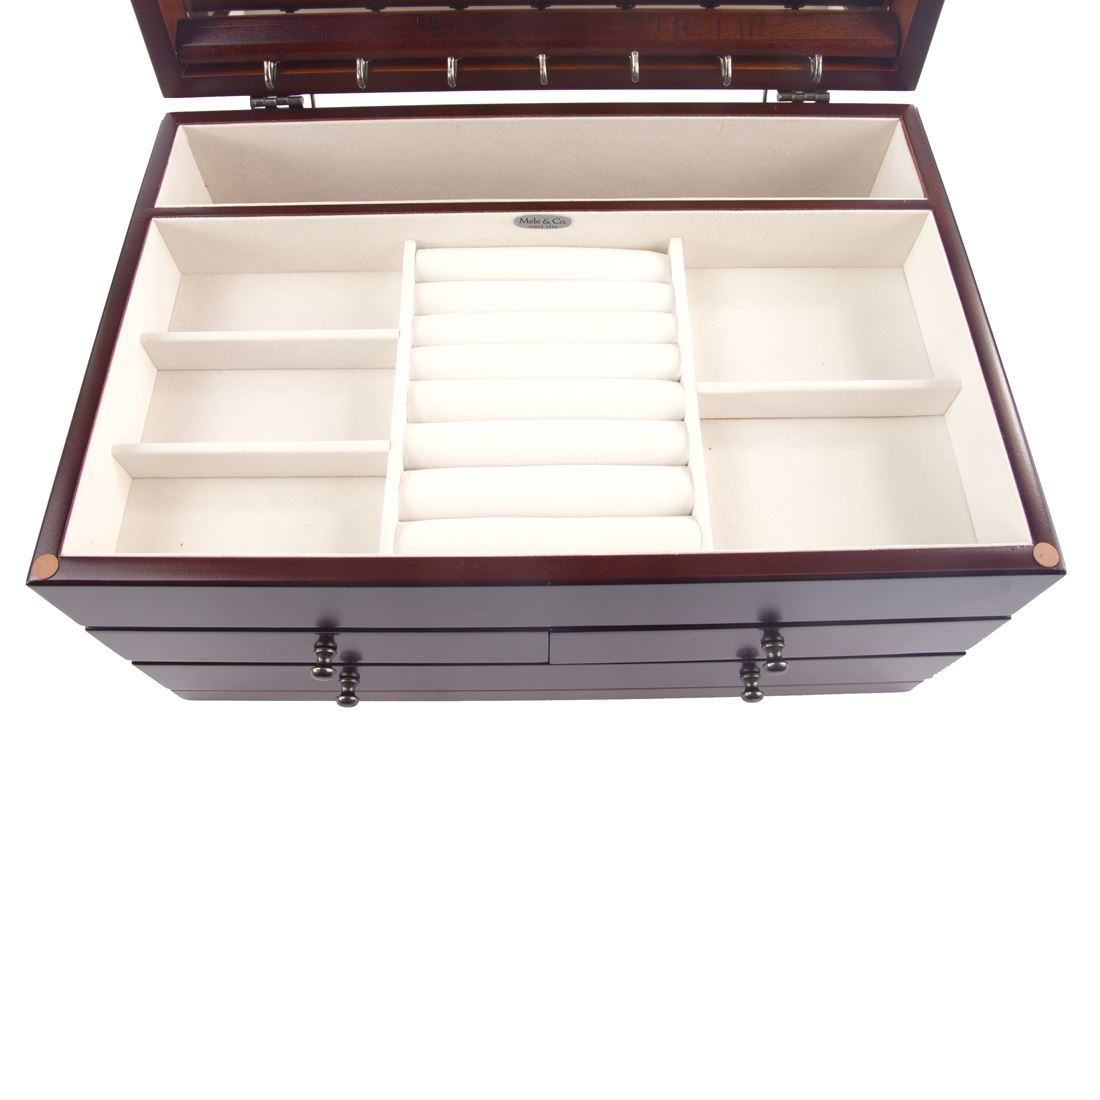 Mele /& Co Ellen or Trudy Wooden Triple Draw Jewellery Box with Large Mirror